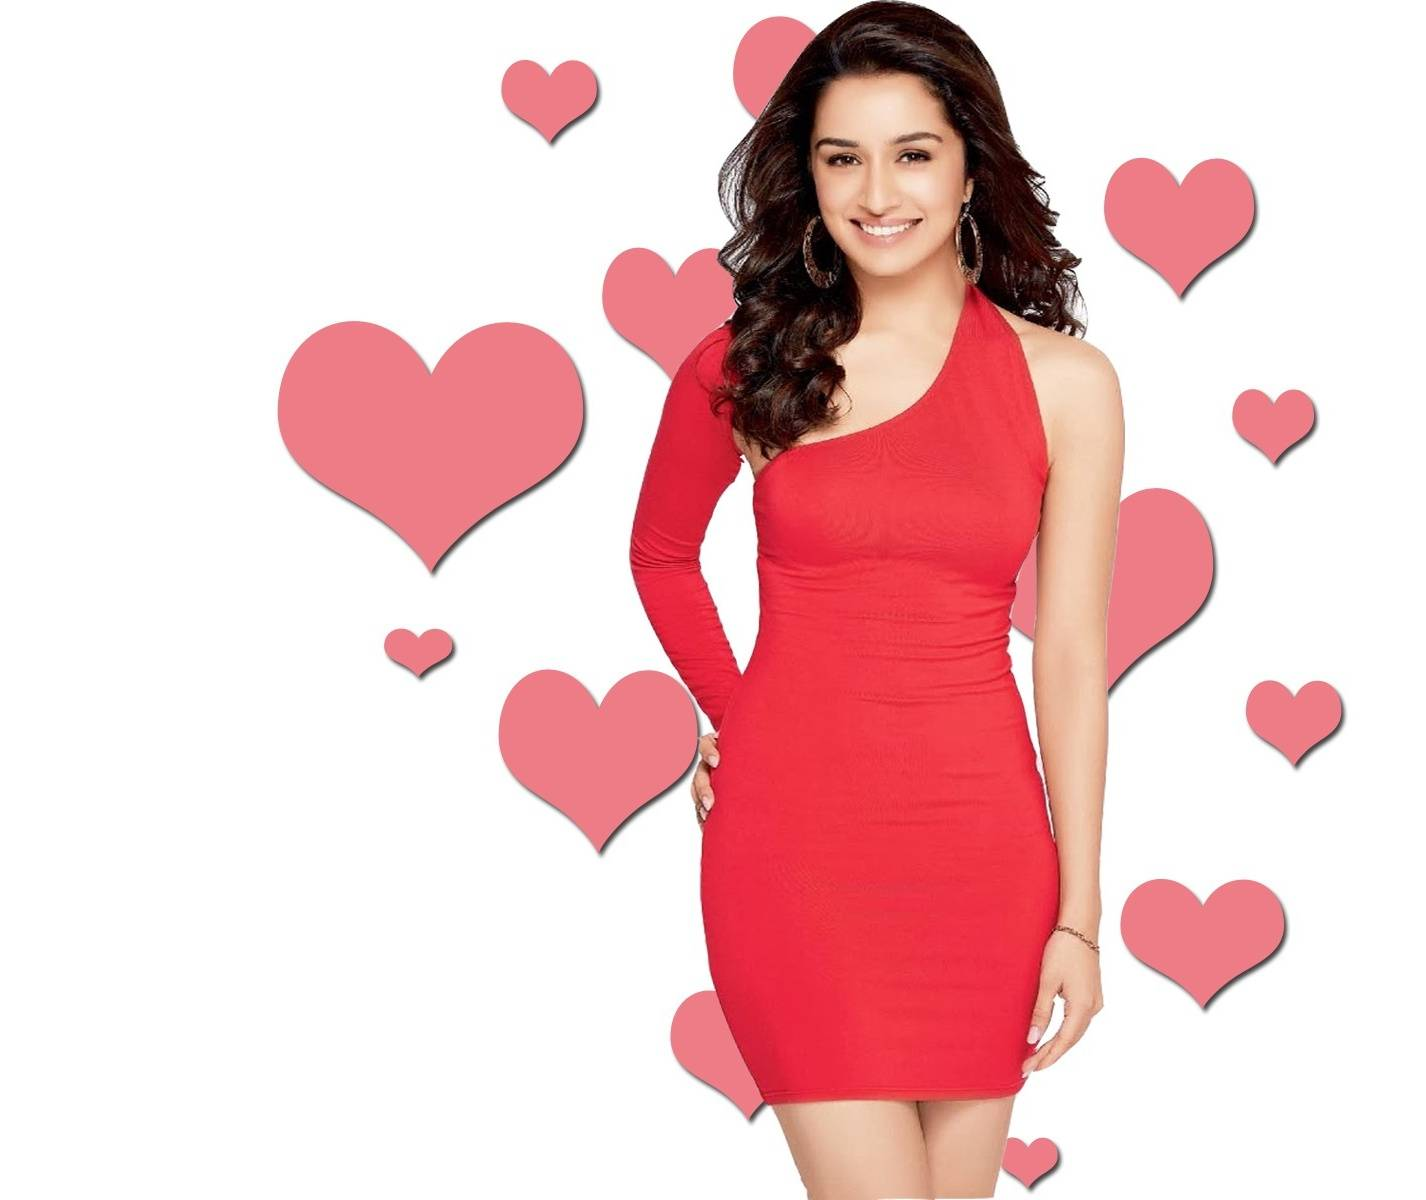 shraddha kapoor hd wallpaperassam_rhino - 02 - free on zedge™